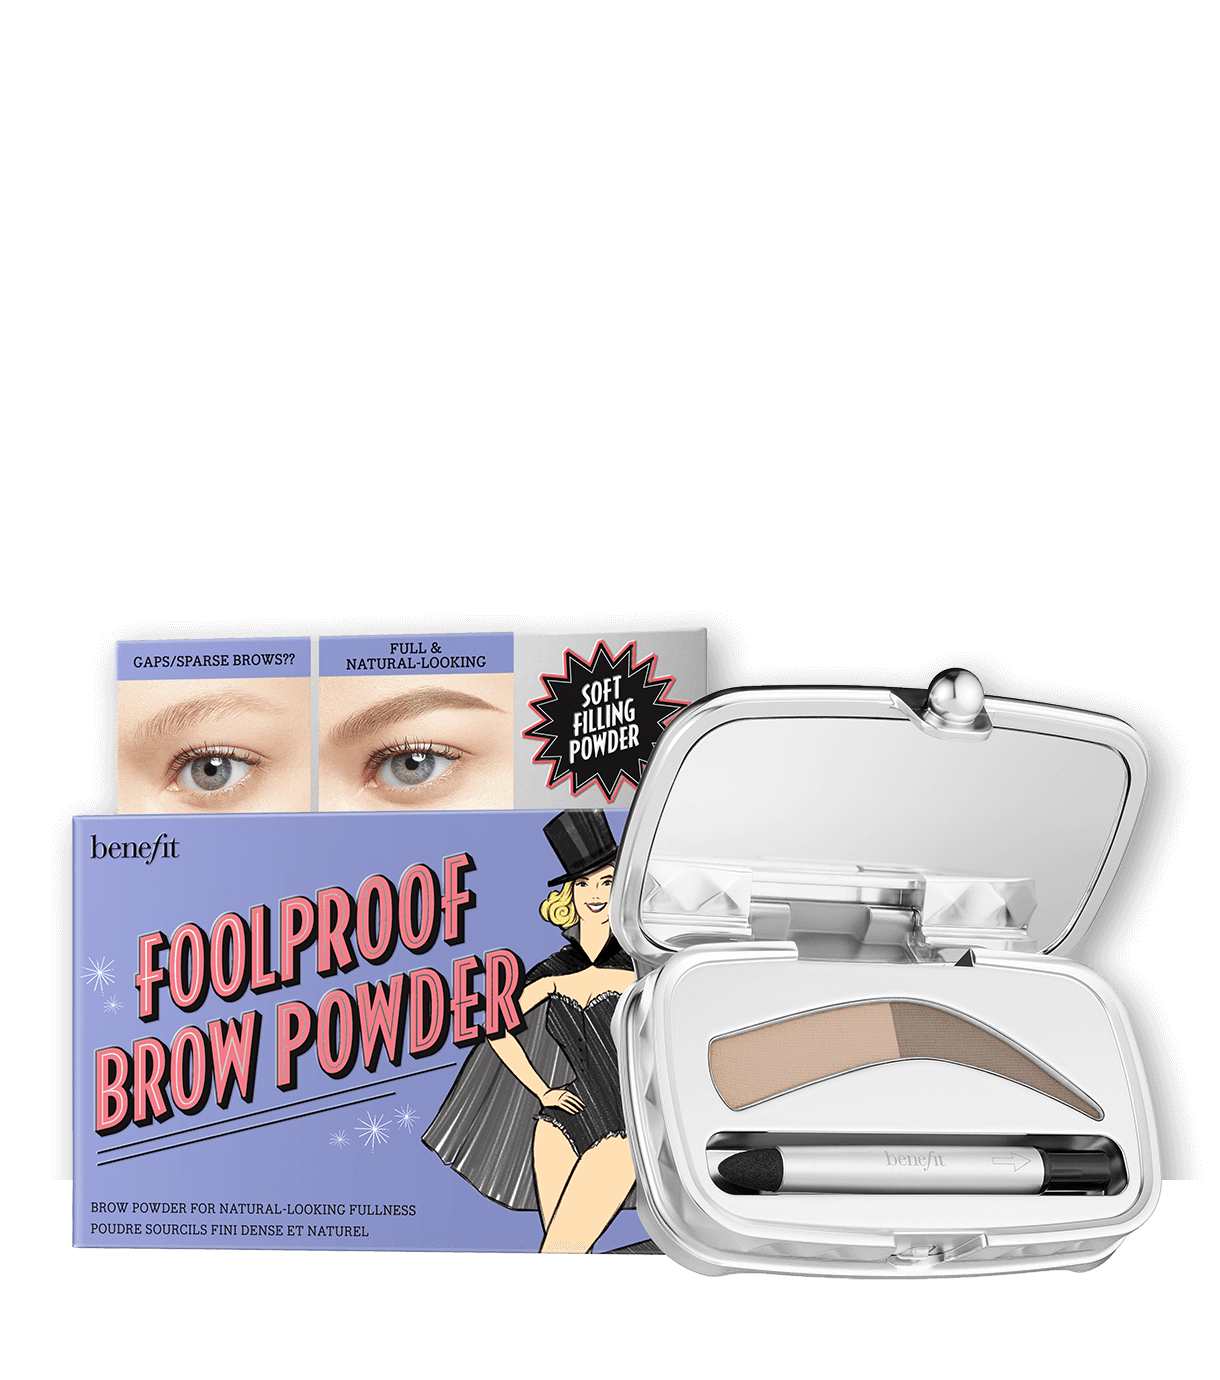 Benefit Foolproof Eyebrow Building Powder, 0.07 oz